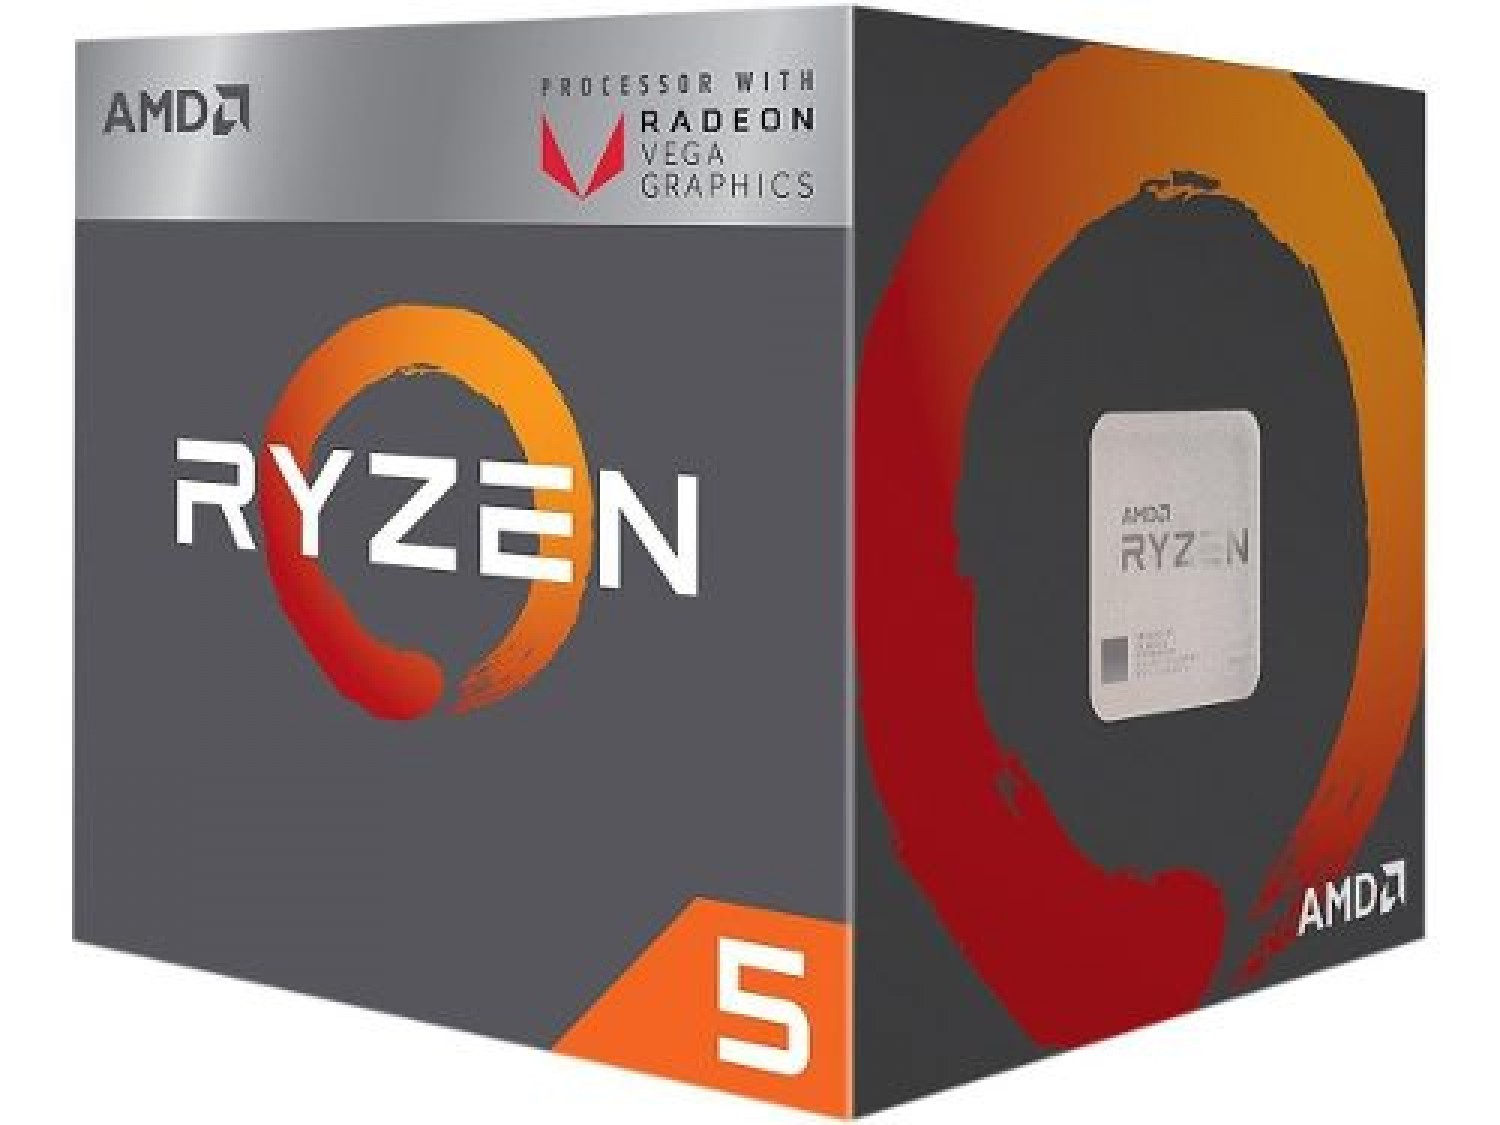 PROCESADOR AMD (AM4) RYZEN 5 2400G